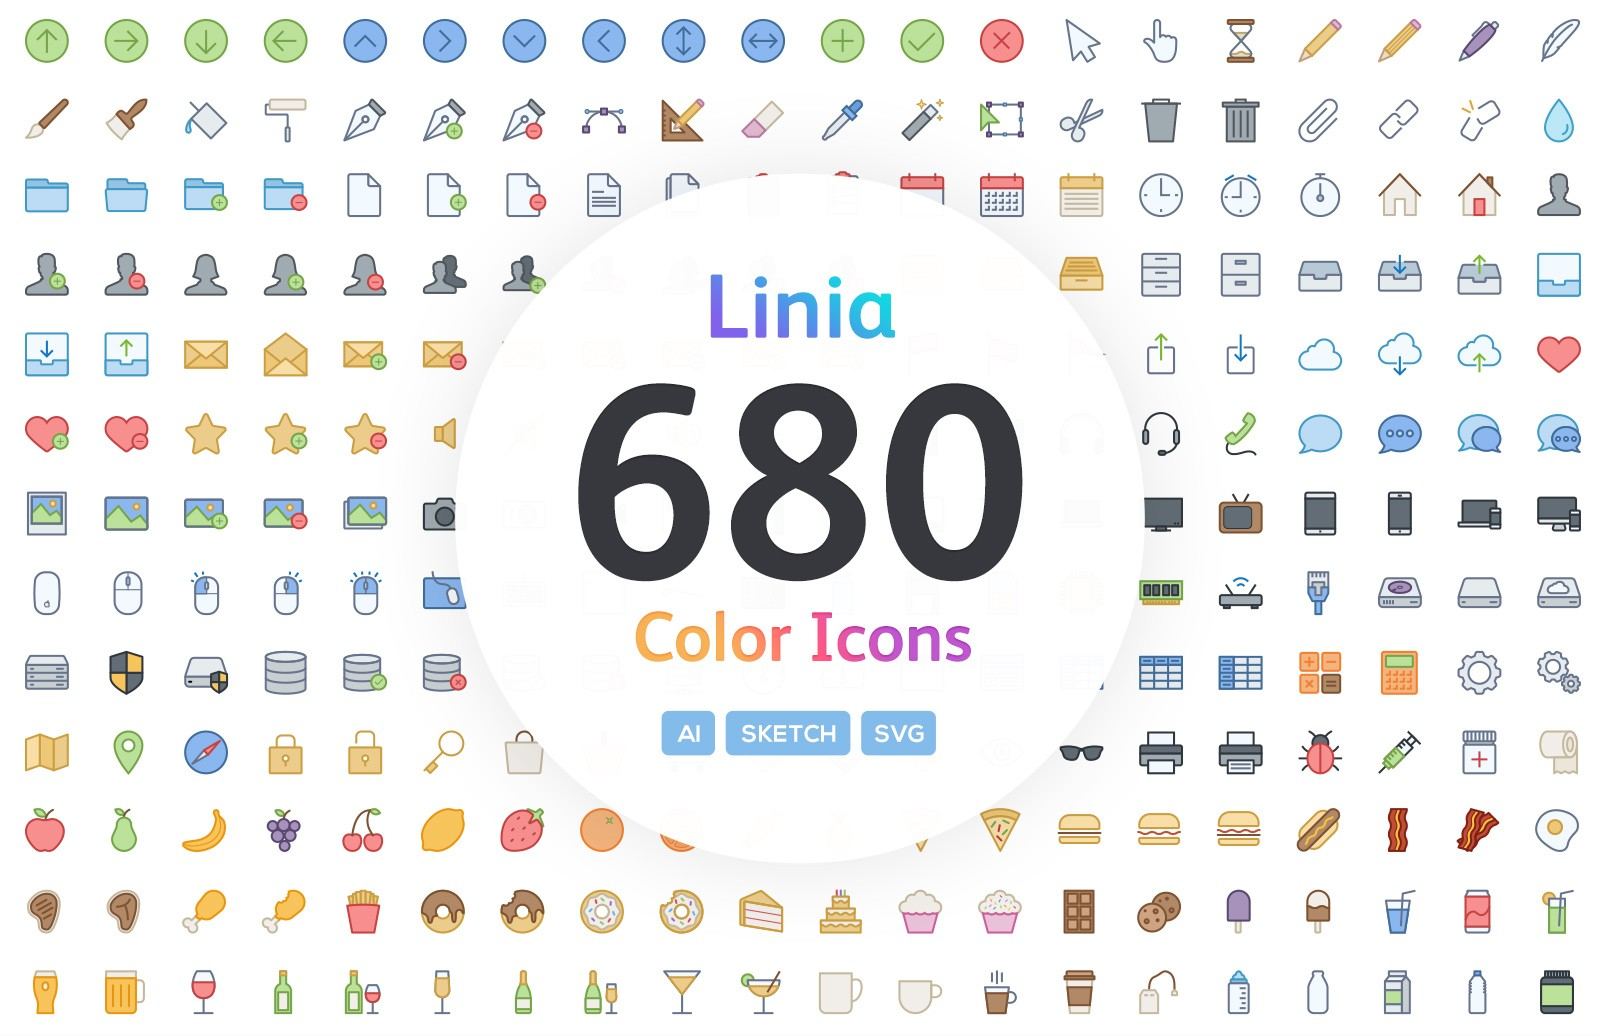 Linia - Vector Line Icons Color